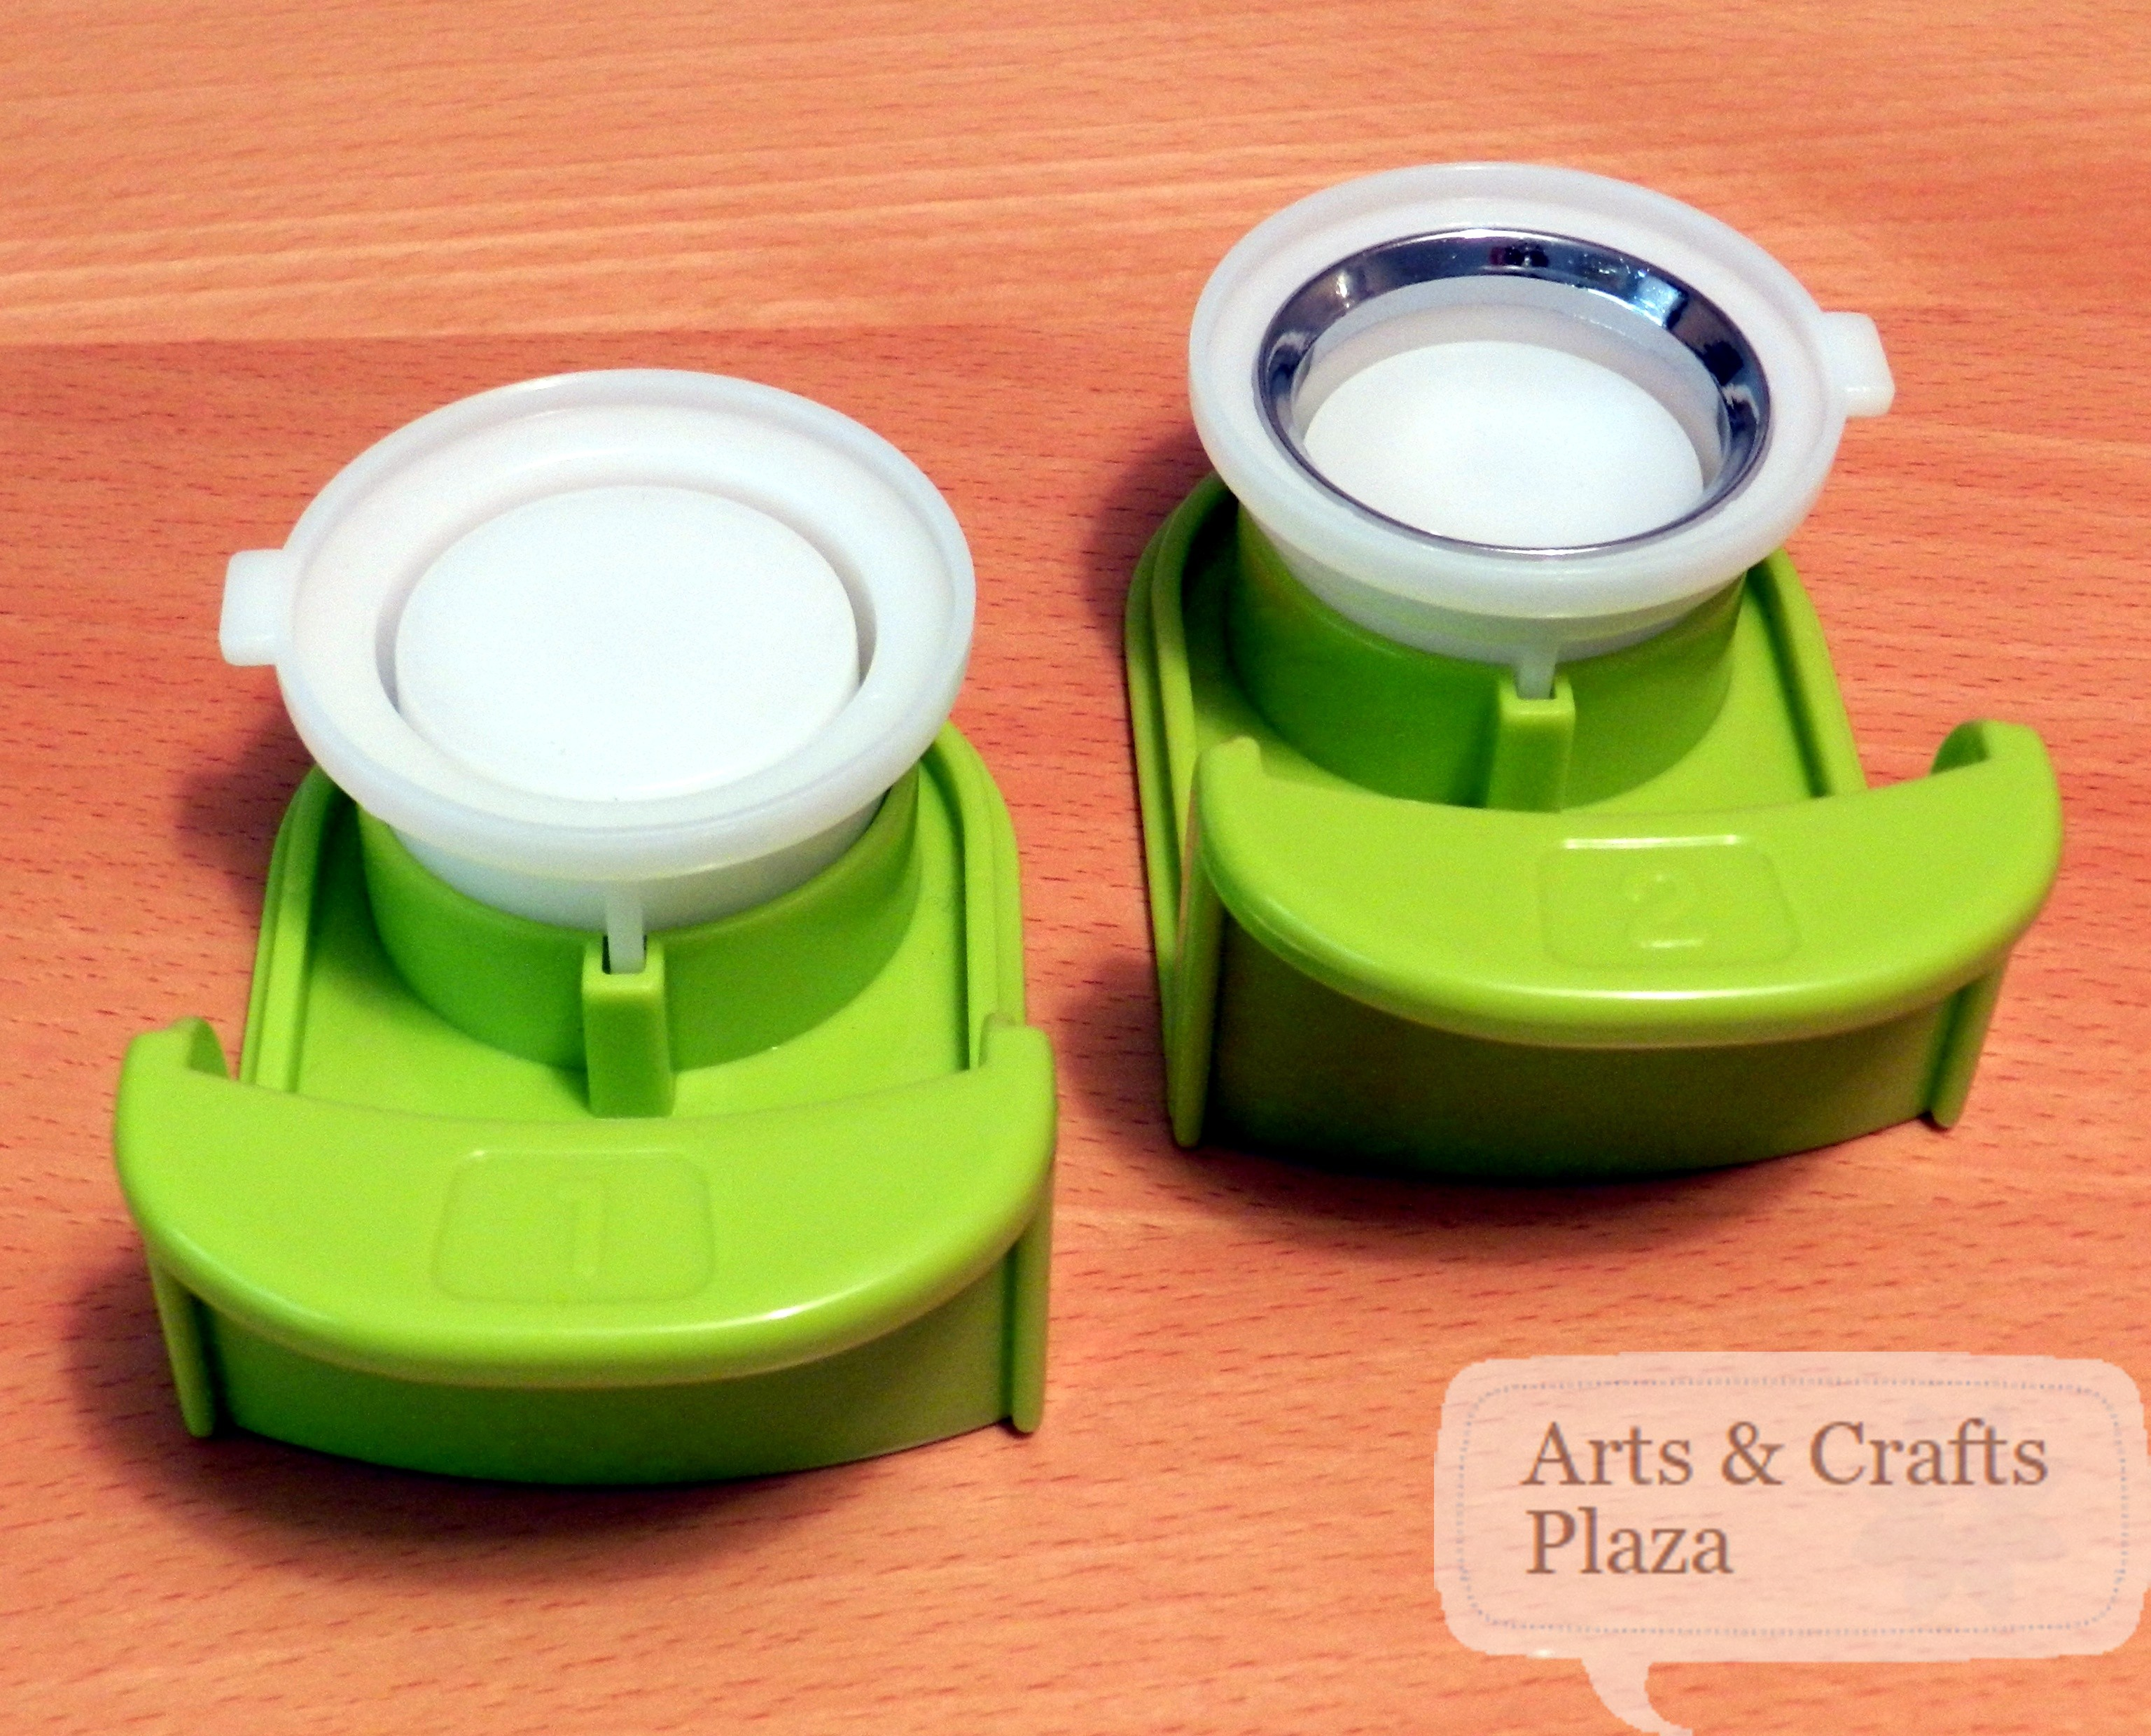 Button maker 6 arts crafts plaza for Michaels crafts button maker